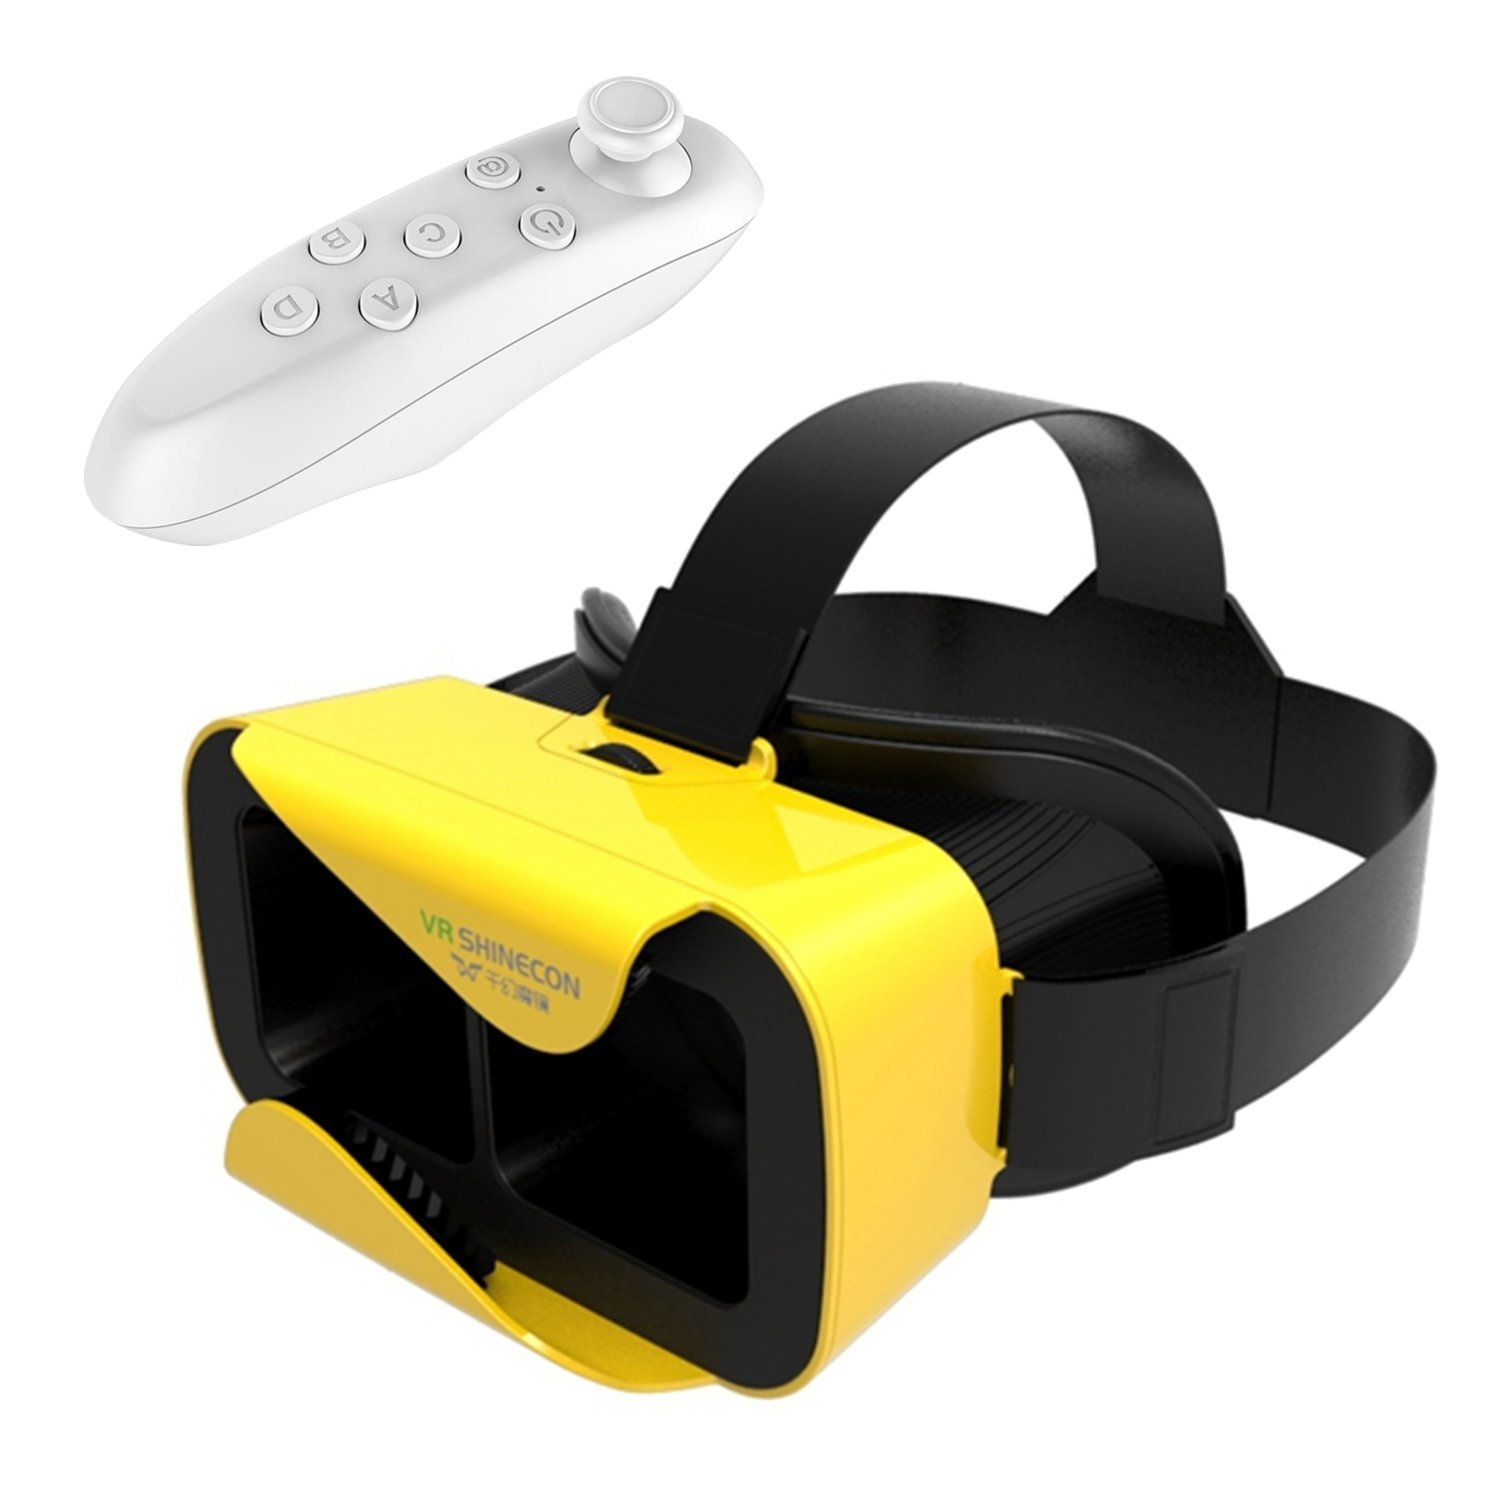 Tsanglight VR Headset, Virtual Reality 3D Glasses VR Helmet Game Video Headset[Newest]+Wireless Remote Controller for IOS iPhone 7/6S Plus, Android Samsung S7 Edge/S7[4.7-6.0inch Smart Phone]-Yellow